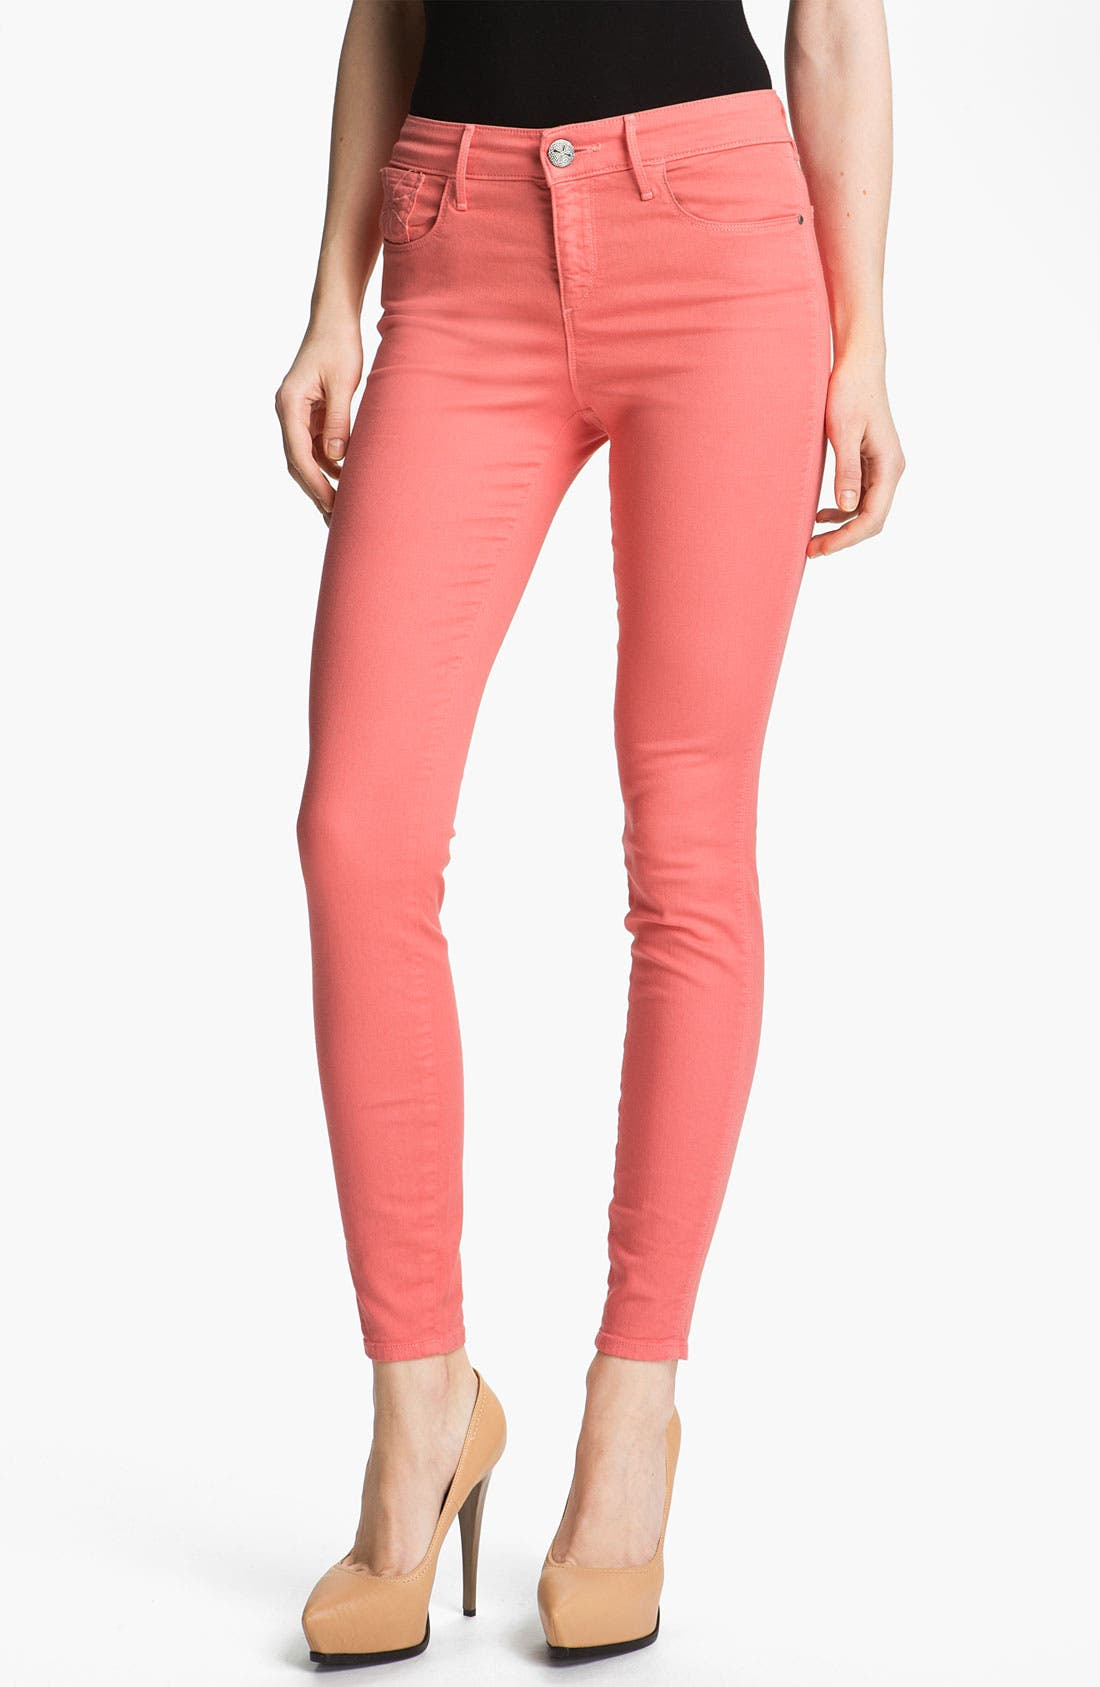 'Grace' High Rise Skinny Stretch Jeans,                             Main thumbnail 1, color,                             675